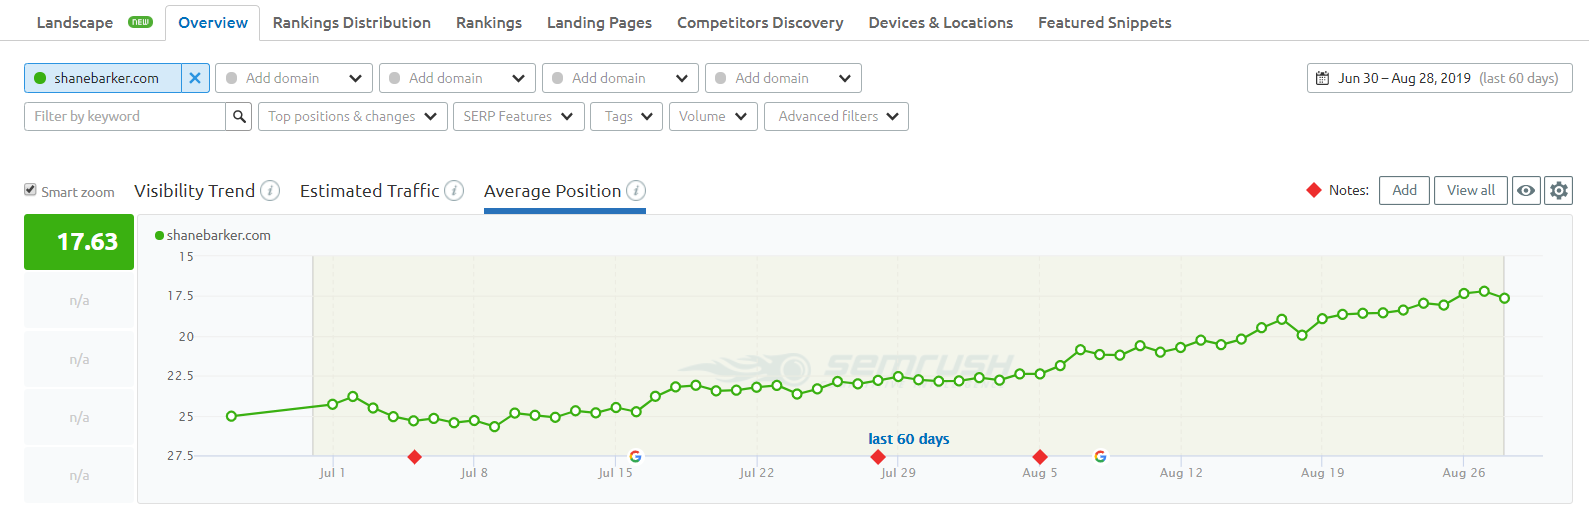 Track Changes in Search Rankings and Organic Traffic Link Building ROI